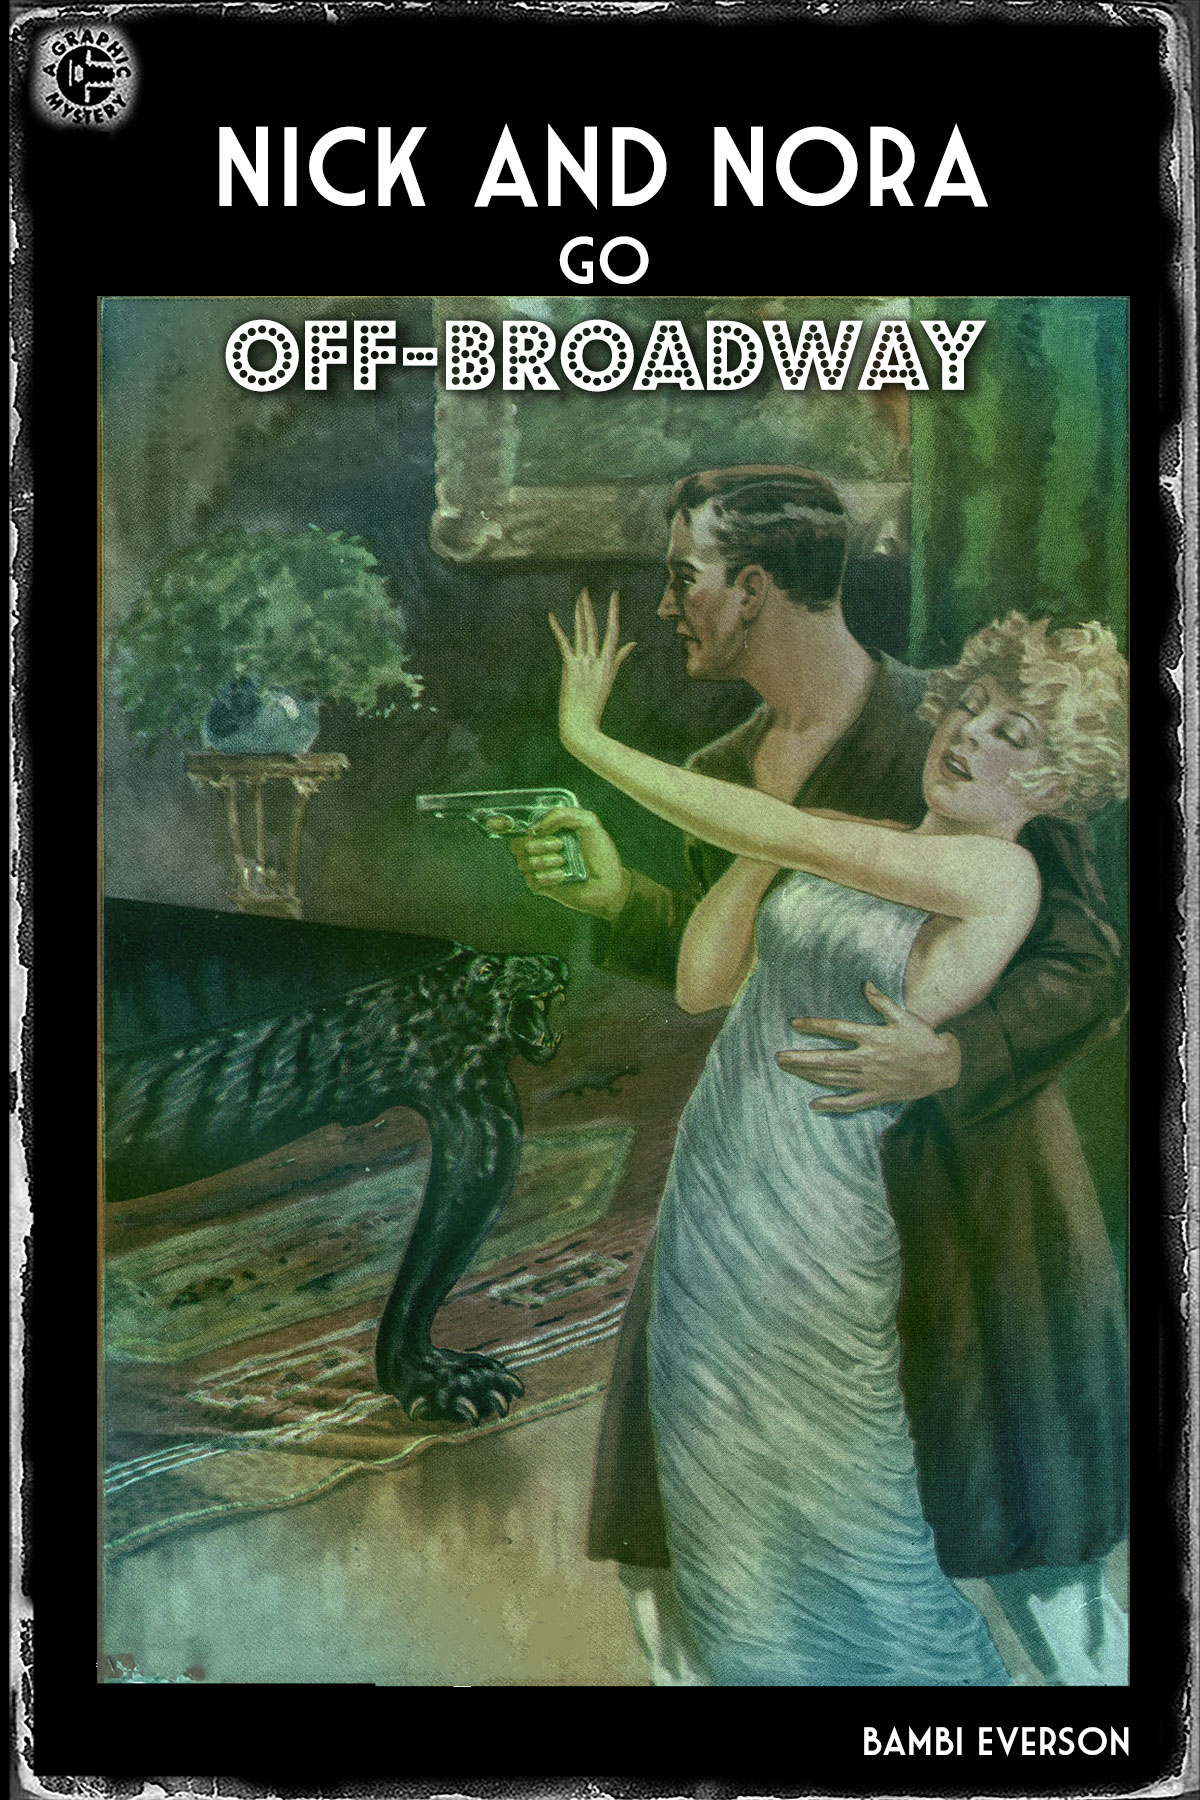 In this standalone sequel to The Thin Man In the Cherry Orchard, Anya convinces Nora to take part in an amateur theater production. As is par for the course, a murder takes place and Nick must solve the crime before opening night. Full length, approx. 100m, one intermission.